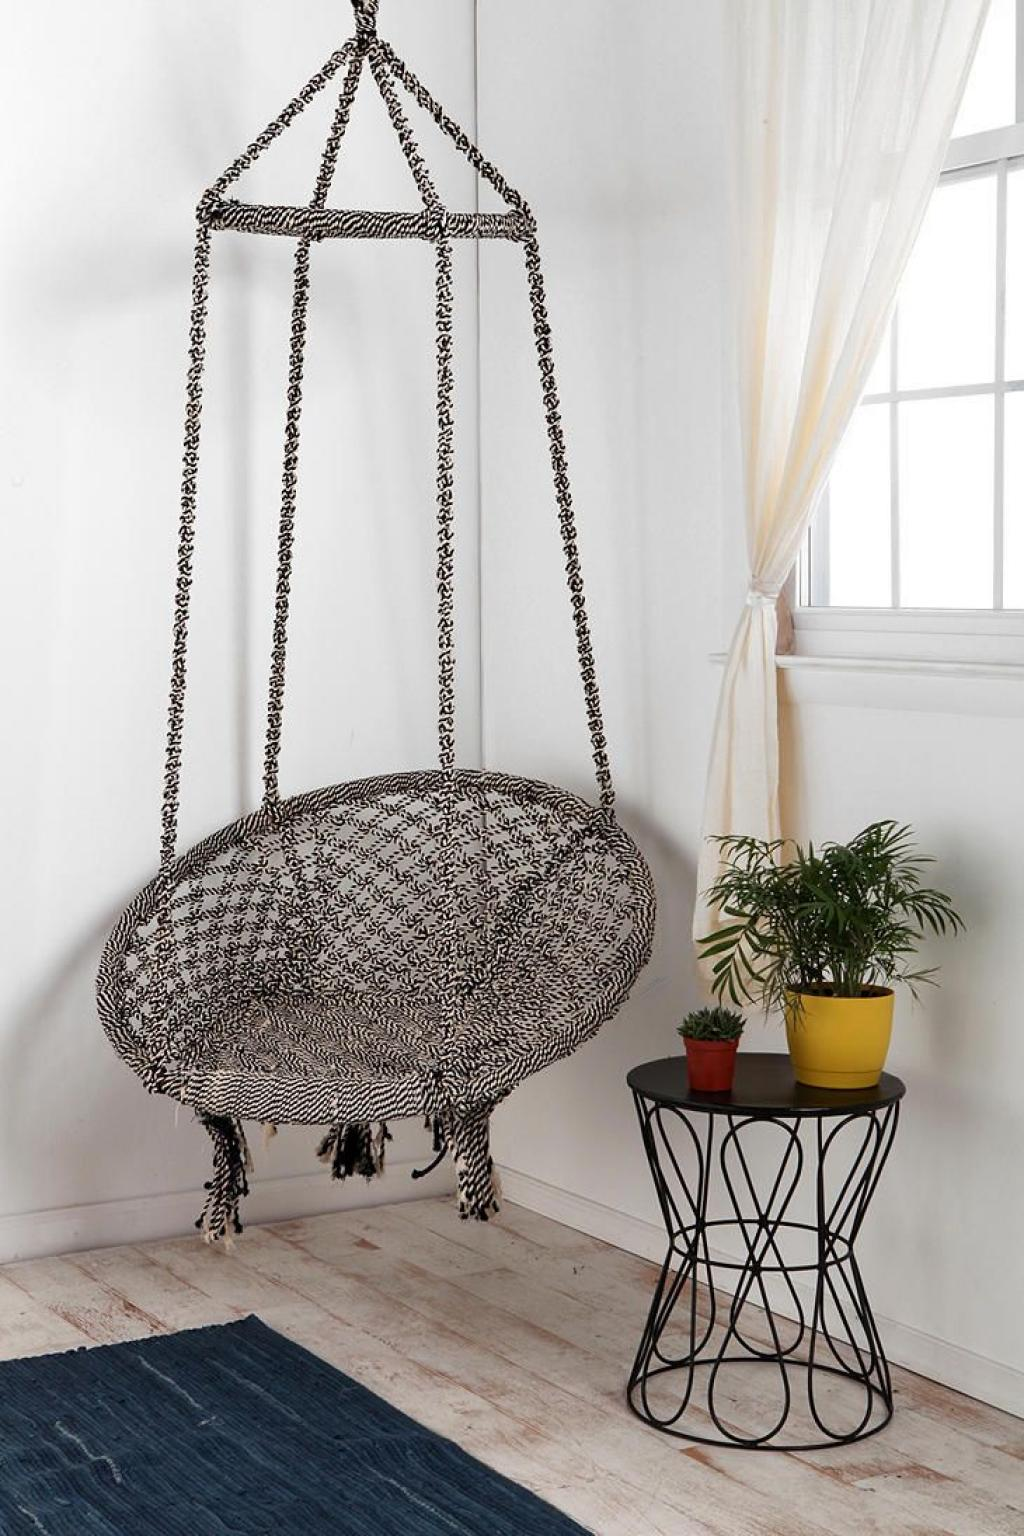 Cool Corner Hanging Reading Chair